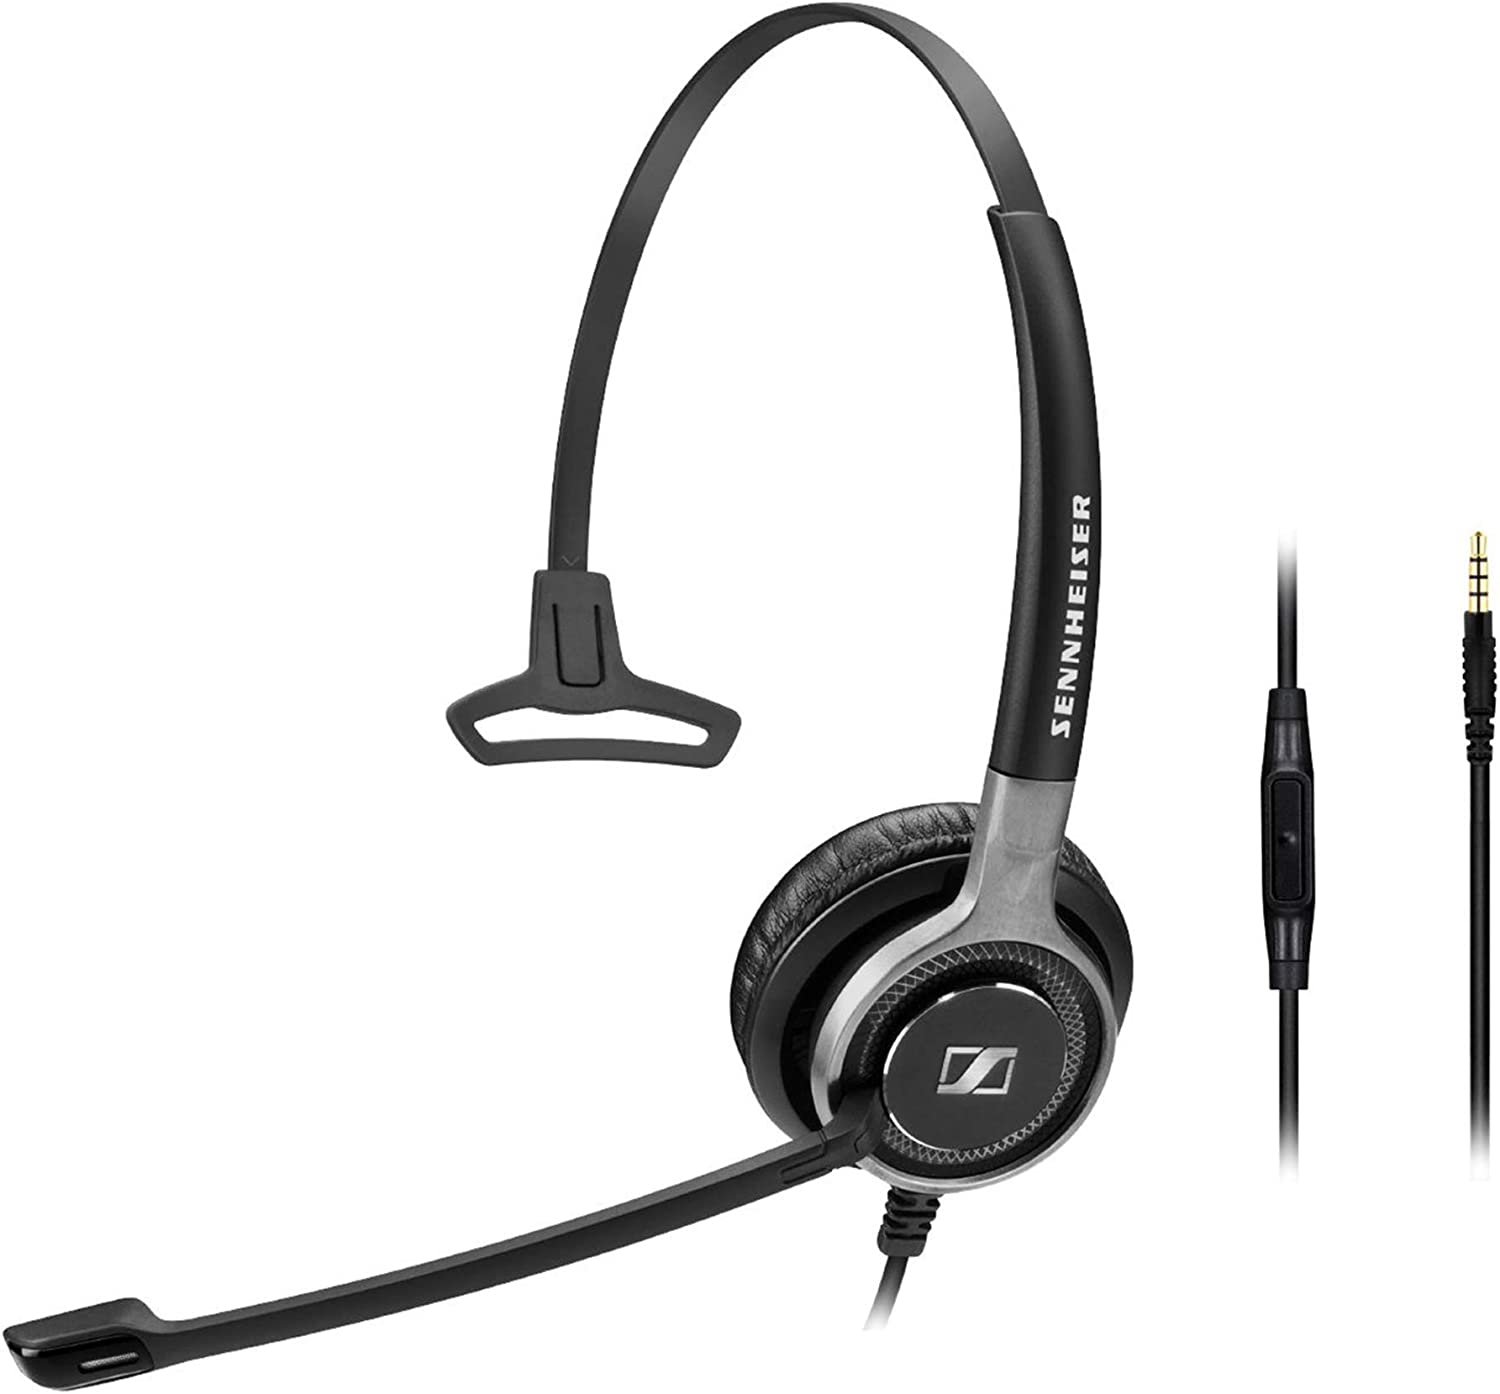 Sennheiser SC 635 (507253) - Single-Sided Business Headset | For Mobile Phone and Tablet | with HD Sound & Ultra Noise-Cancelling Microphone (Black)